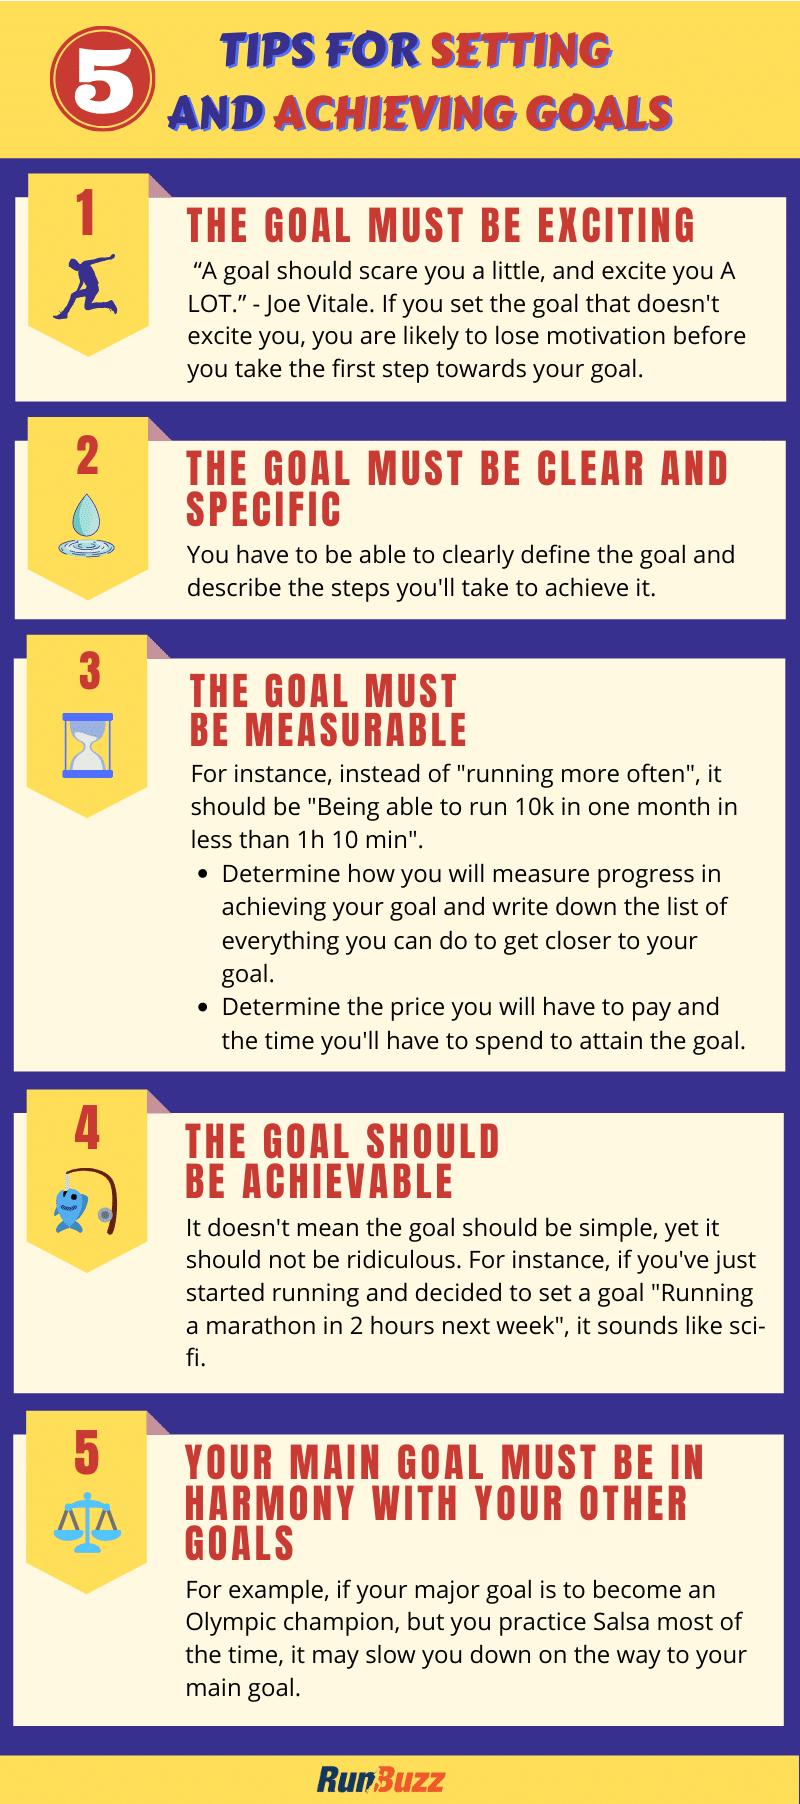 Tips-for-Setting-and-Achieving-Goals